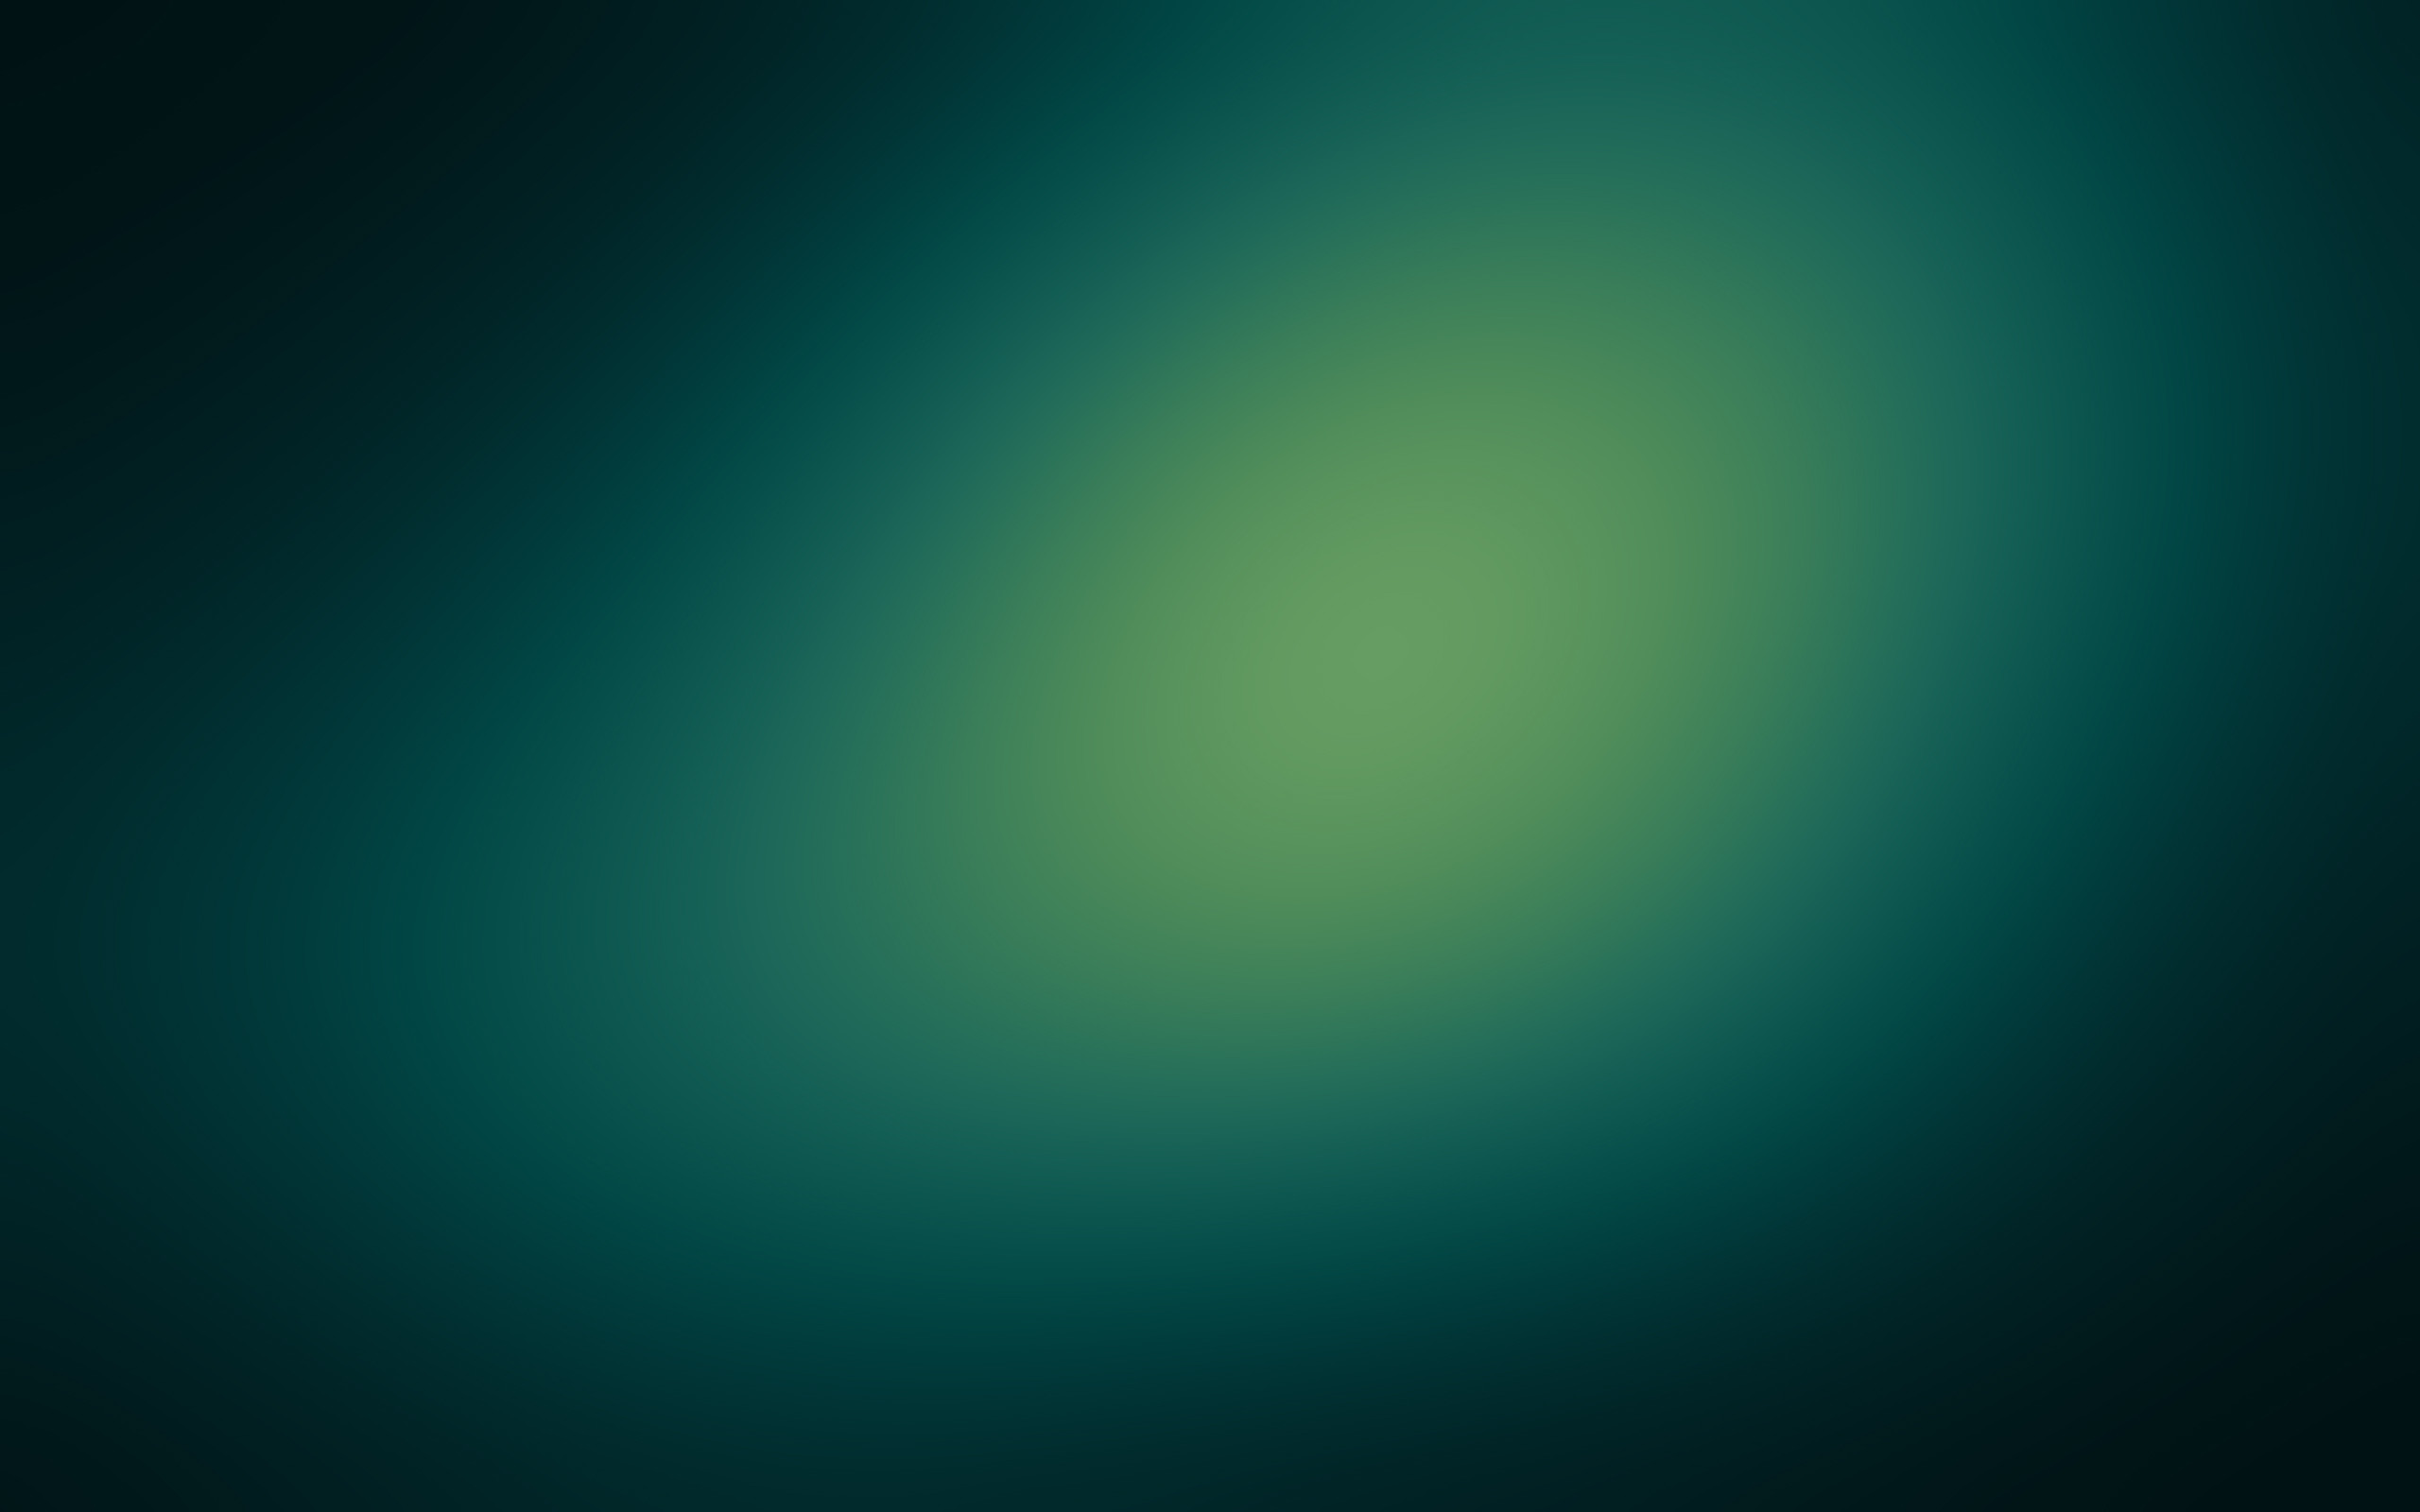 2560x1600 Dark Green Light Wallpaper